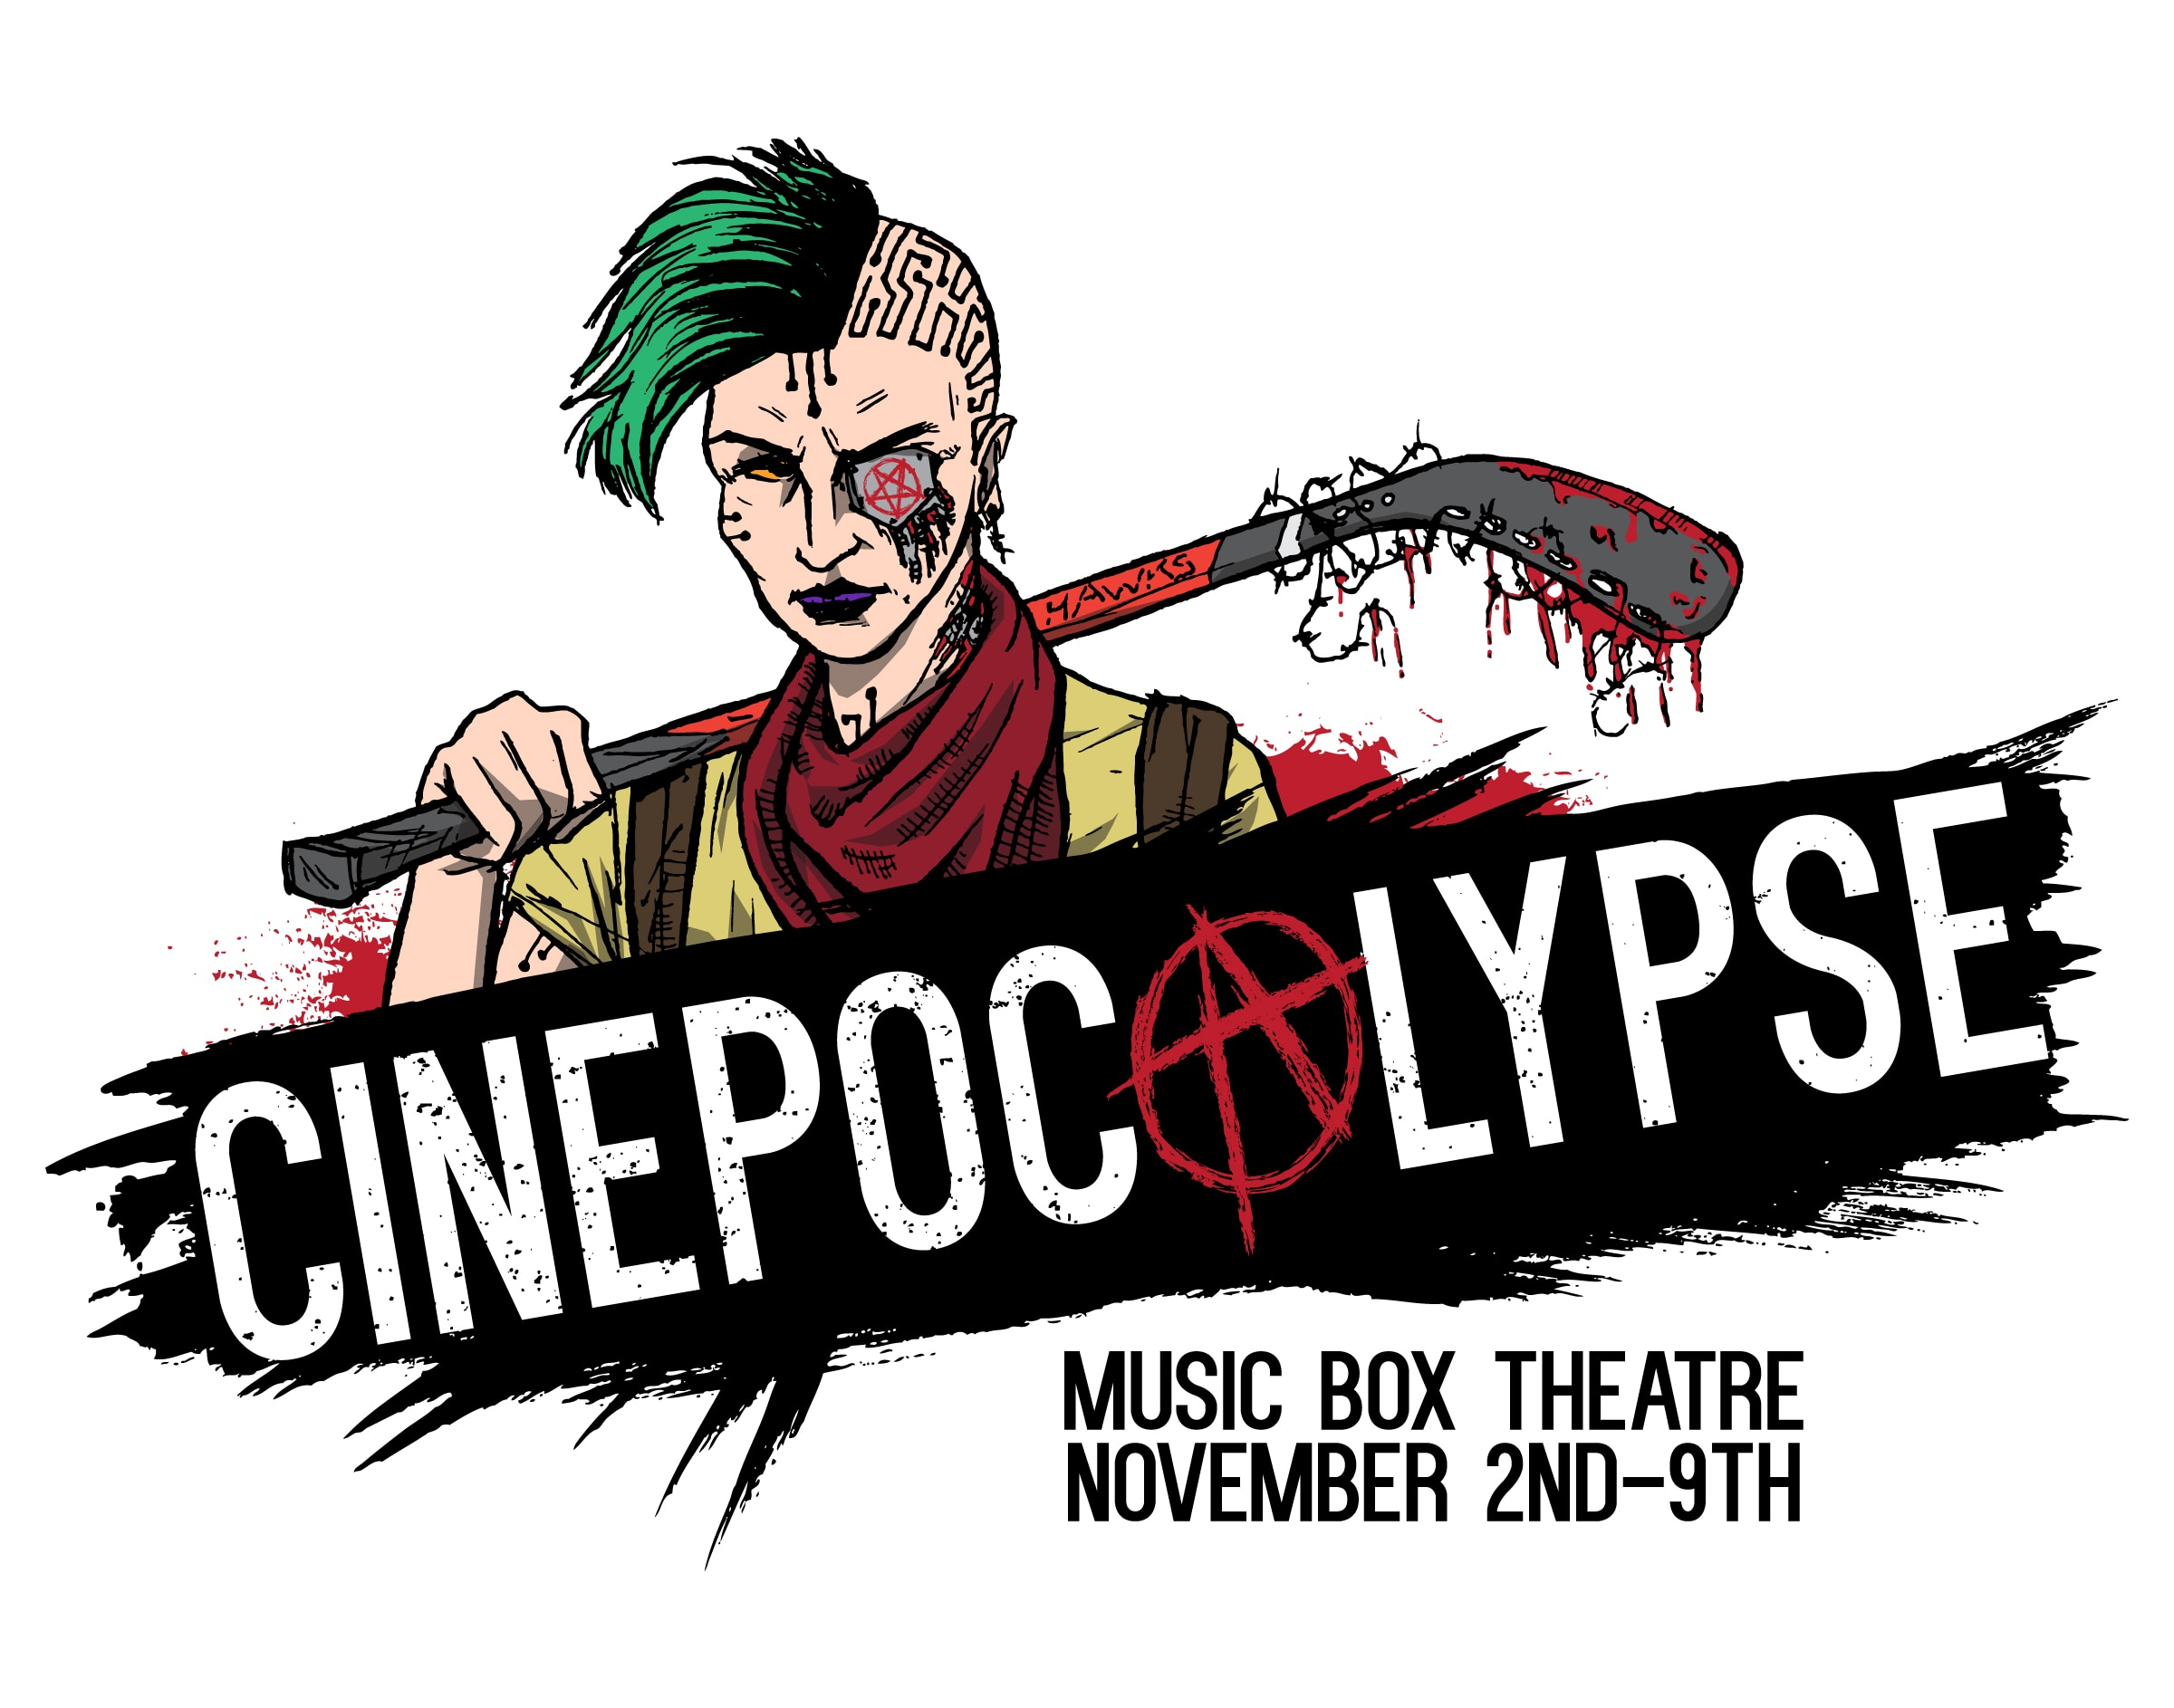 cinepocalypse2017 - Chicago's Cinepocalypse Reveals Full Lineup Plus Guests